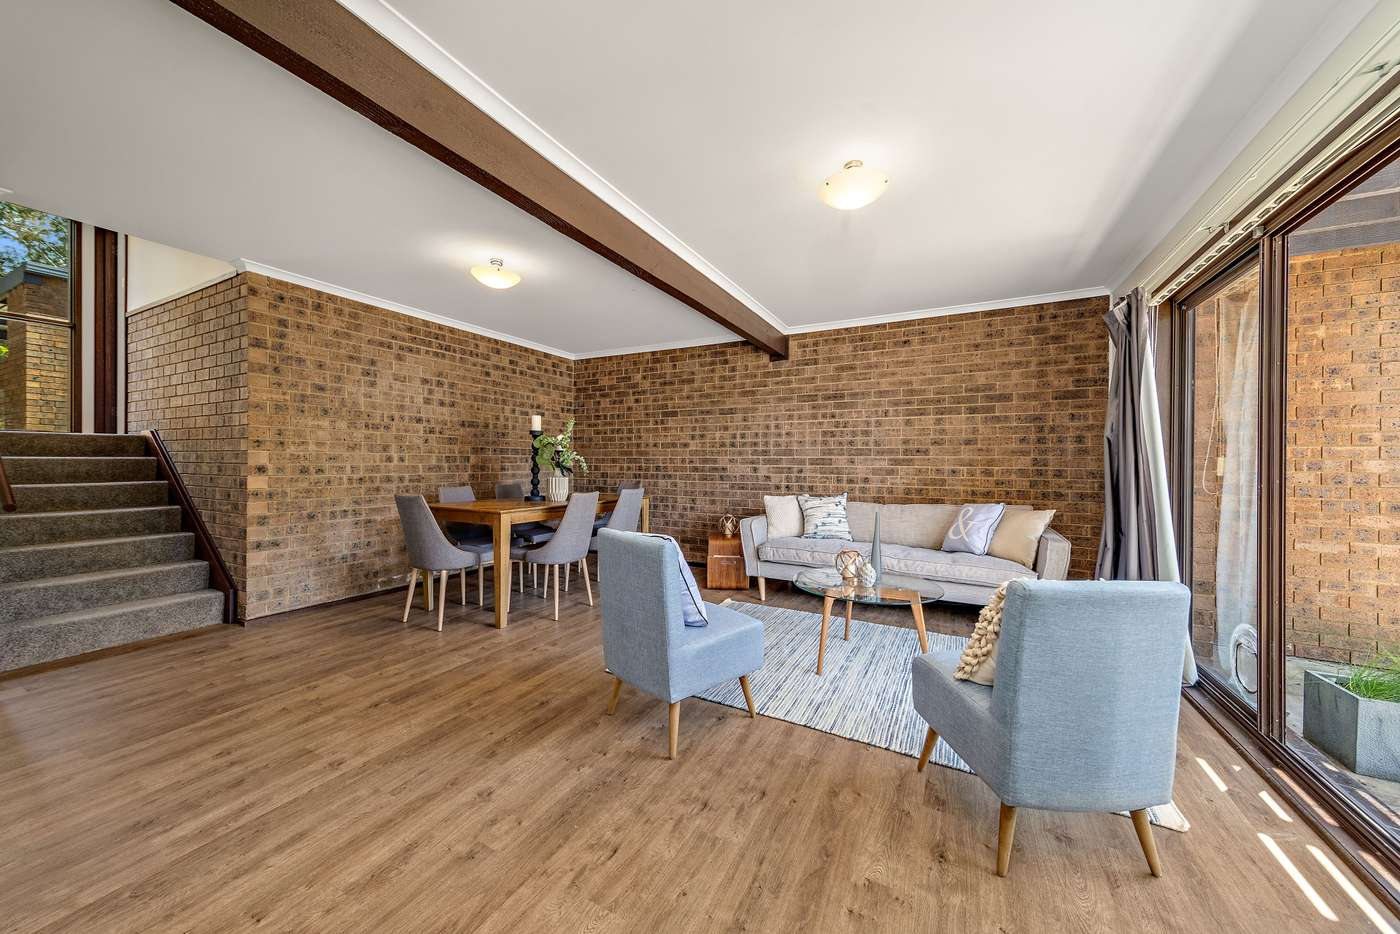 Fifth view of Homely house listing, 10/41 Jinka Street, Hawker ACT 2614